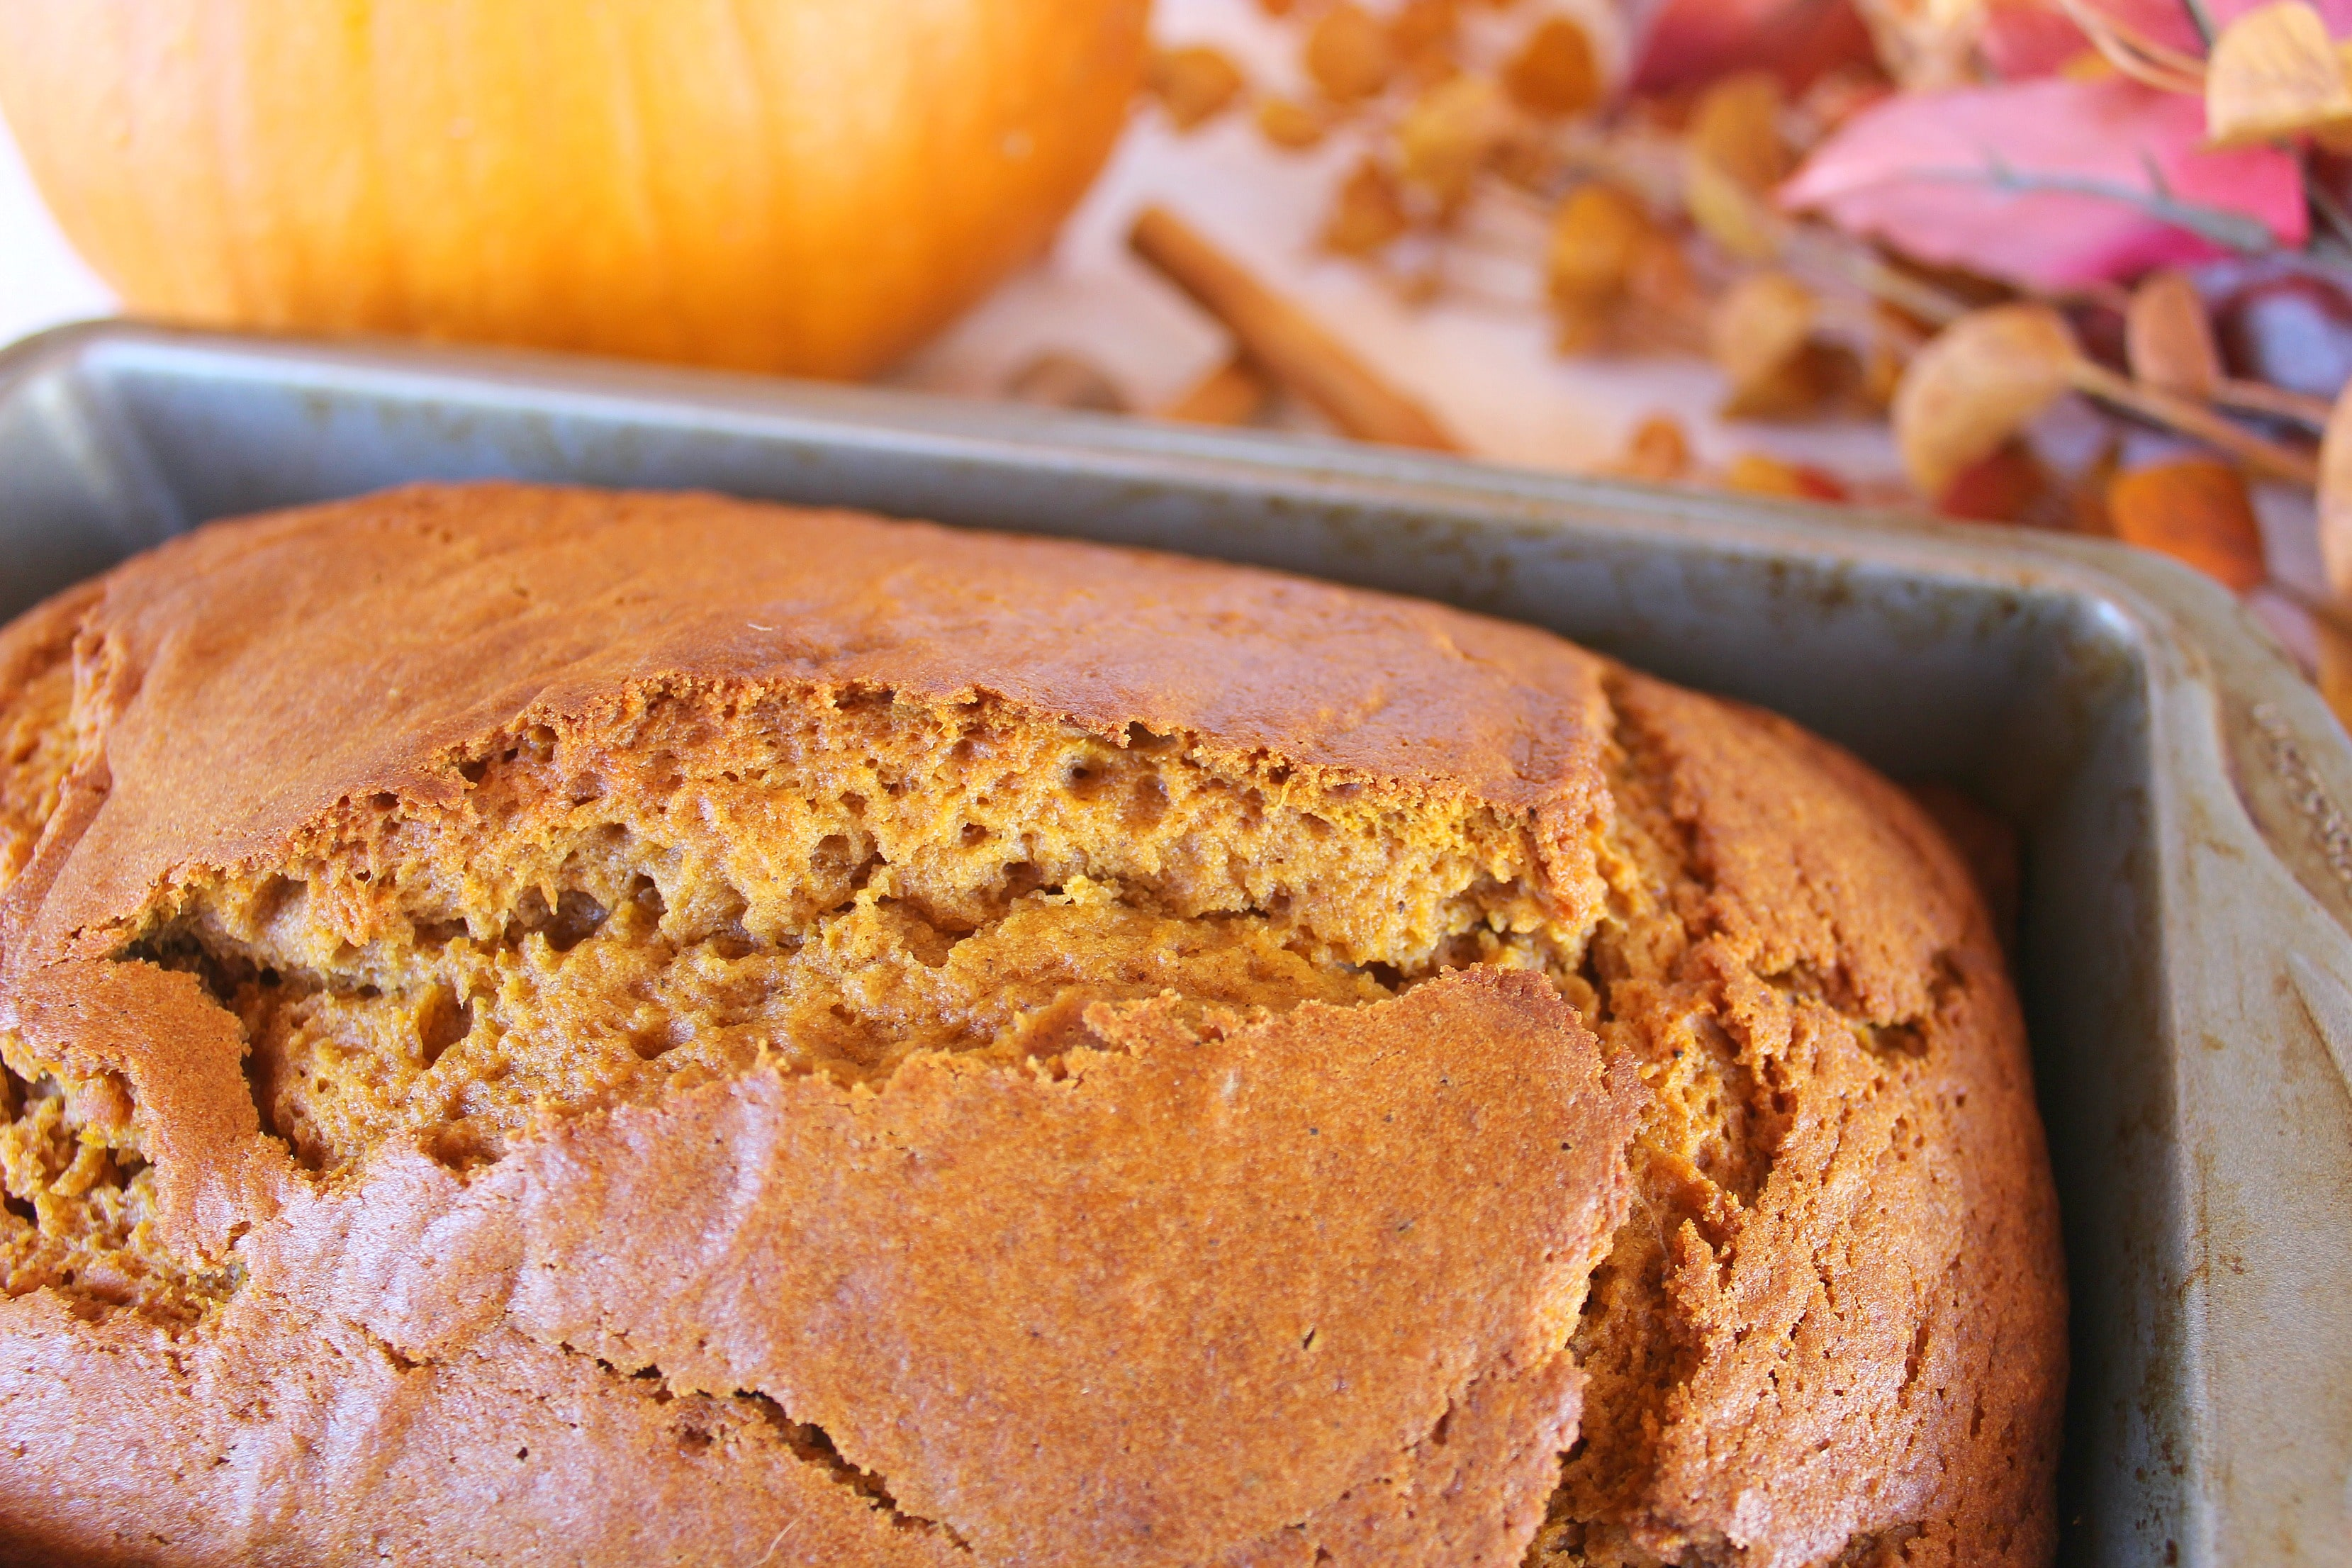 Once your pumpkin bread is done baking allow it to cool before cutting.